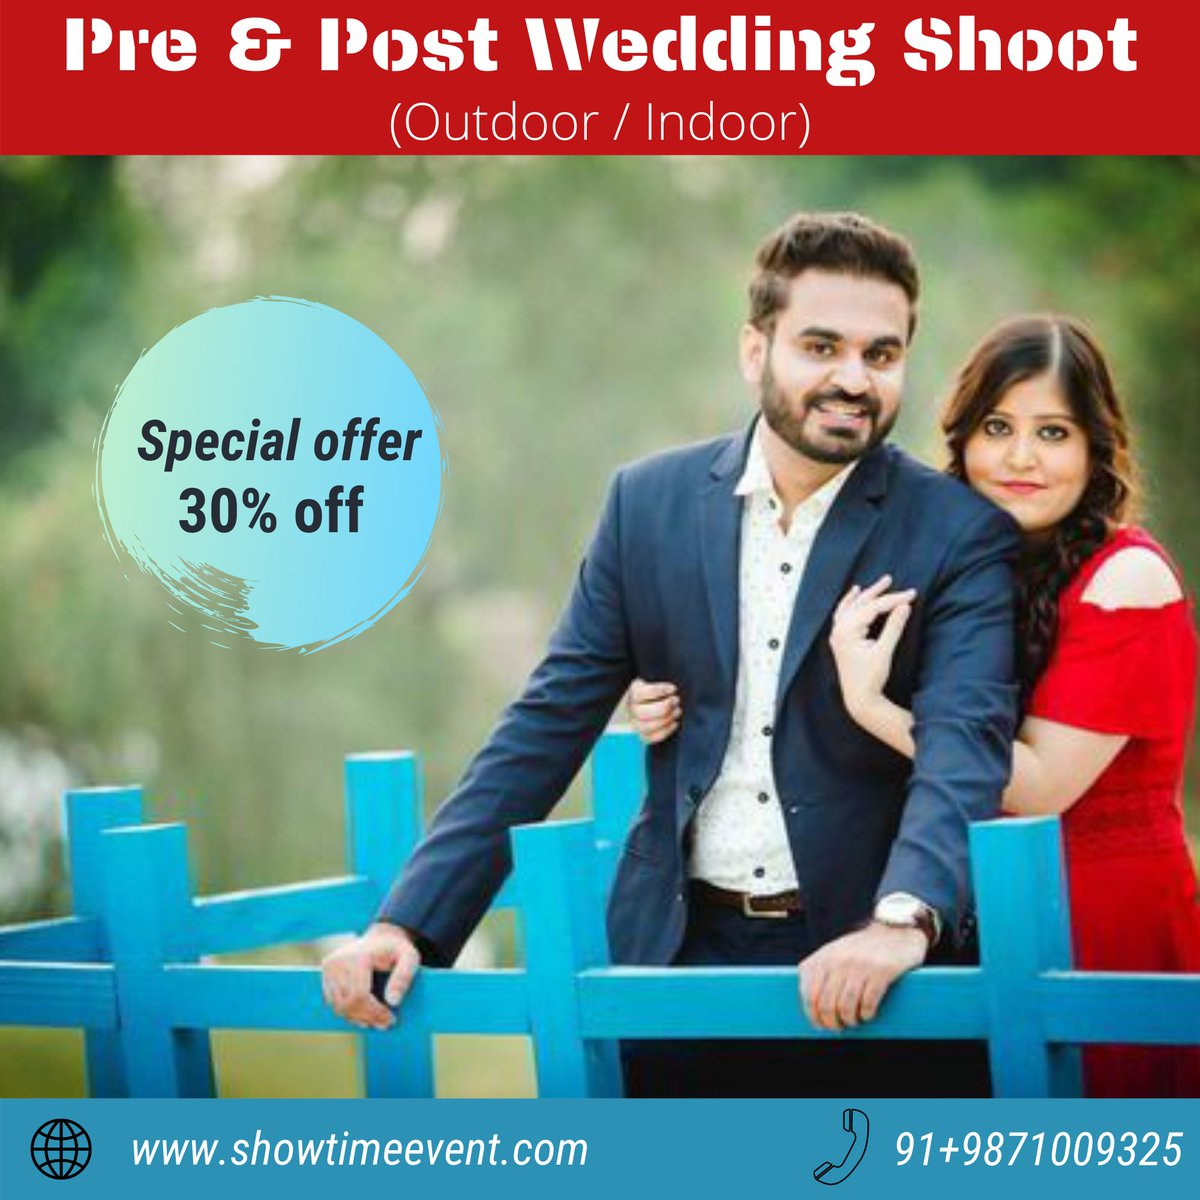 Flaunt everything about the wedding of your dreams be it the beautiful invitations or photographs with yourloved ones.  Book your shoots with showtime event Pre wedding & Post wedding shoots  For more details on the offer, call us on 9871009325 or DM us!!  #prewedding #wedding